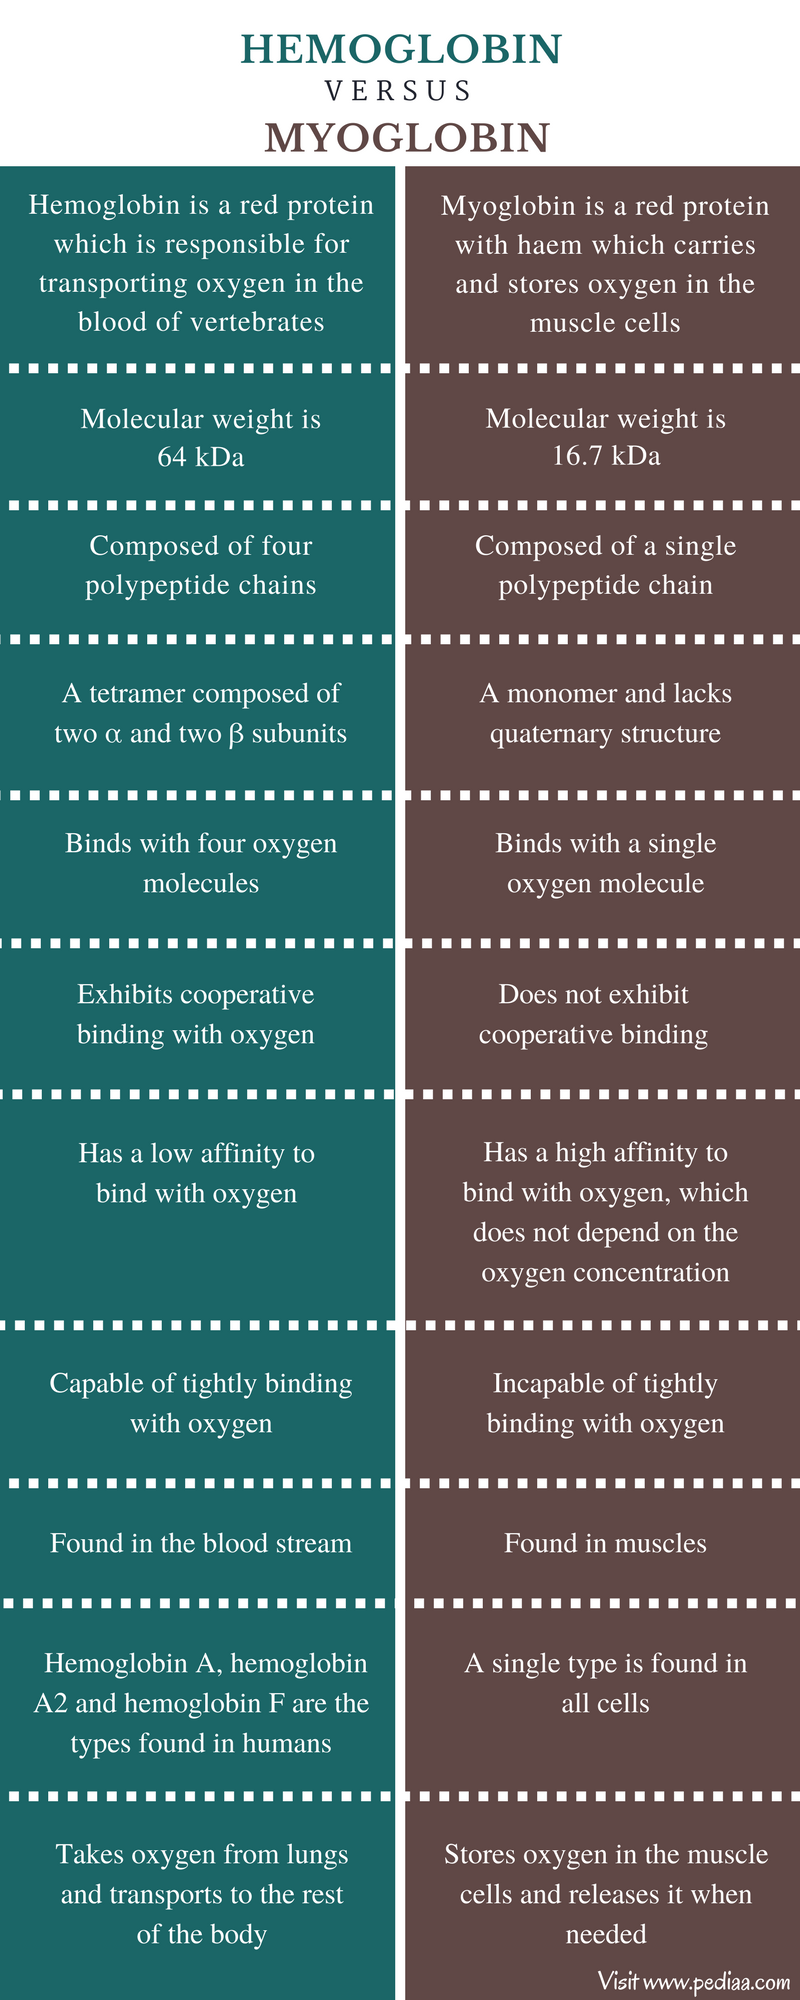 Difference Between Hemoglobin and Myoglobin - Comparison Summary